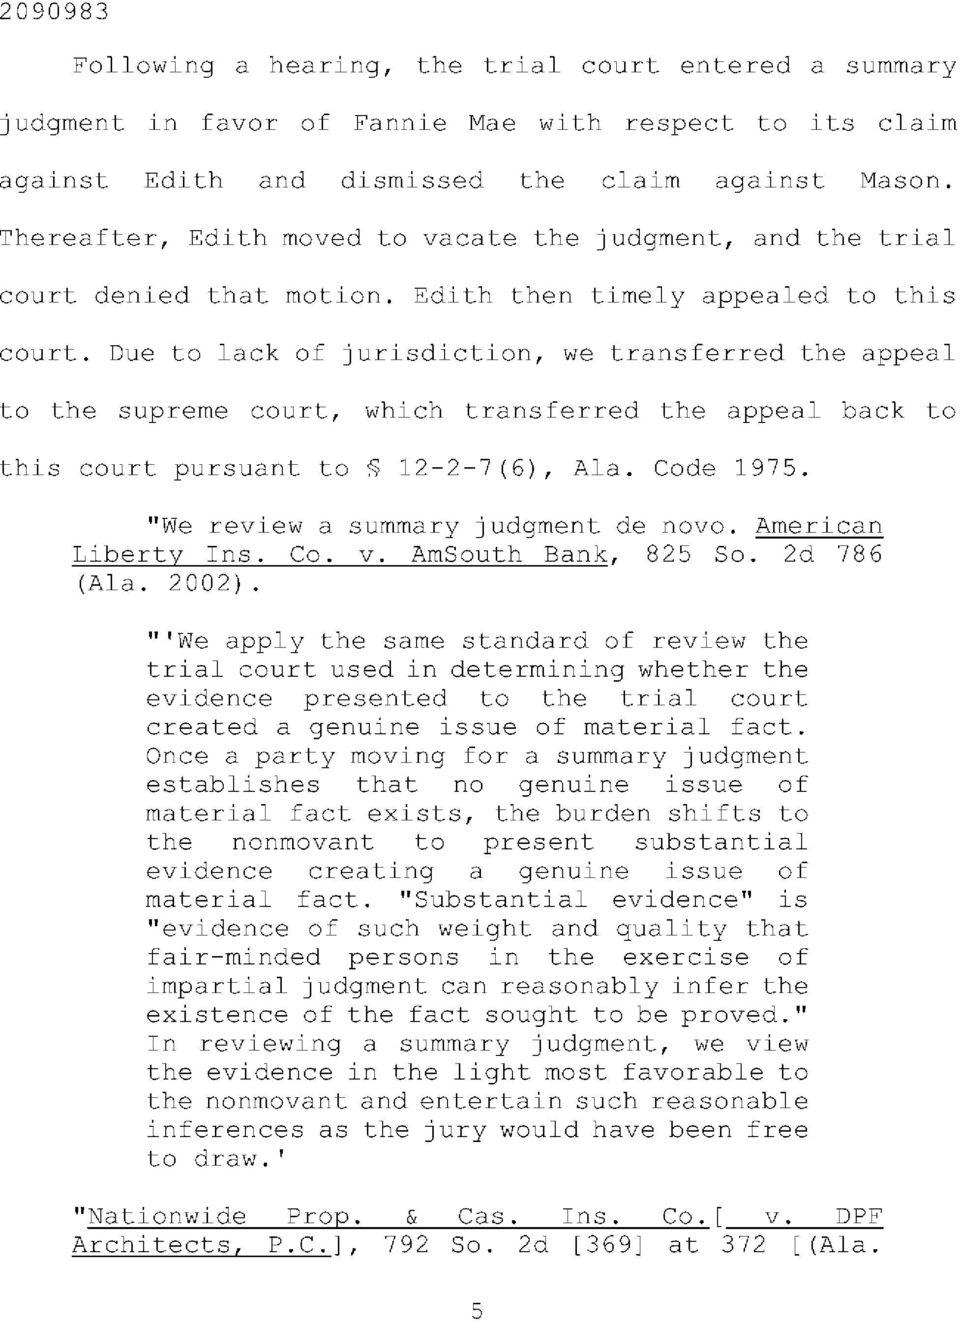 Due to lack of jurisdiction, we transferred the appeal to the supreme court, which transferred the appeal back to this court pursuant to 12-2-7(6), Ala. Code 1975.